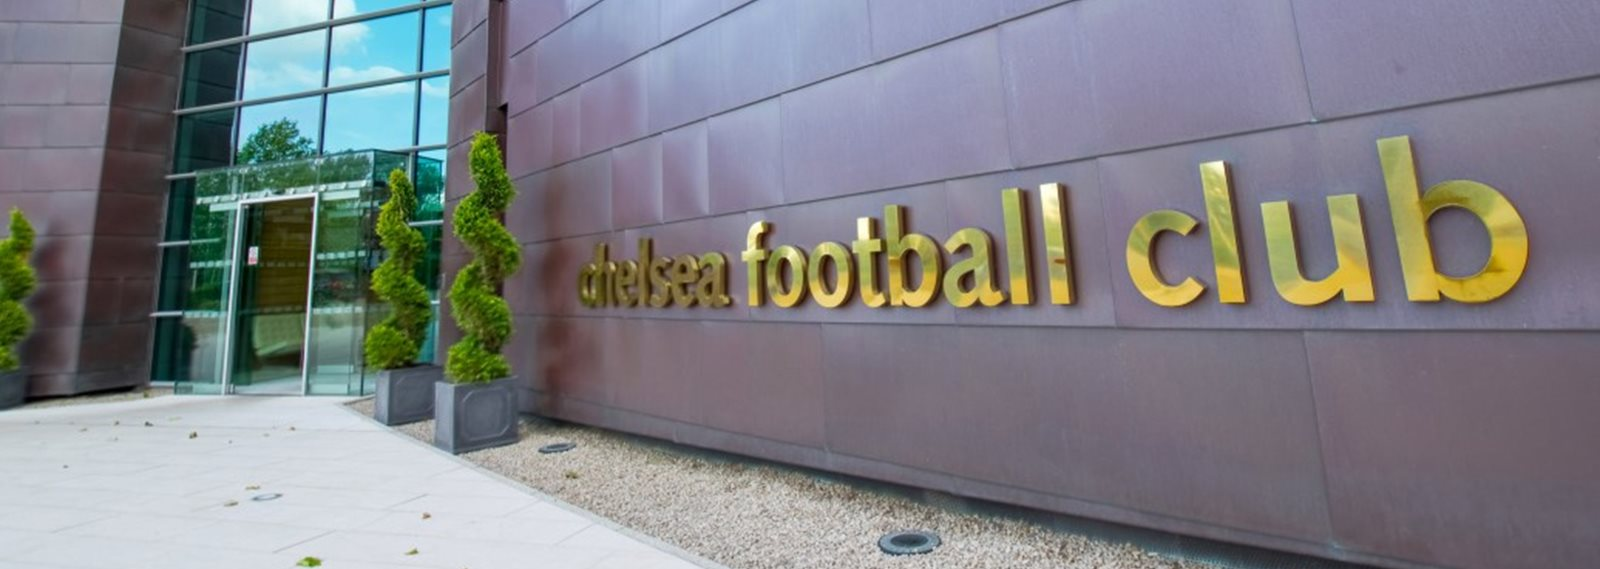 exterior of chelse fc headquarters